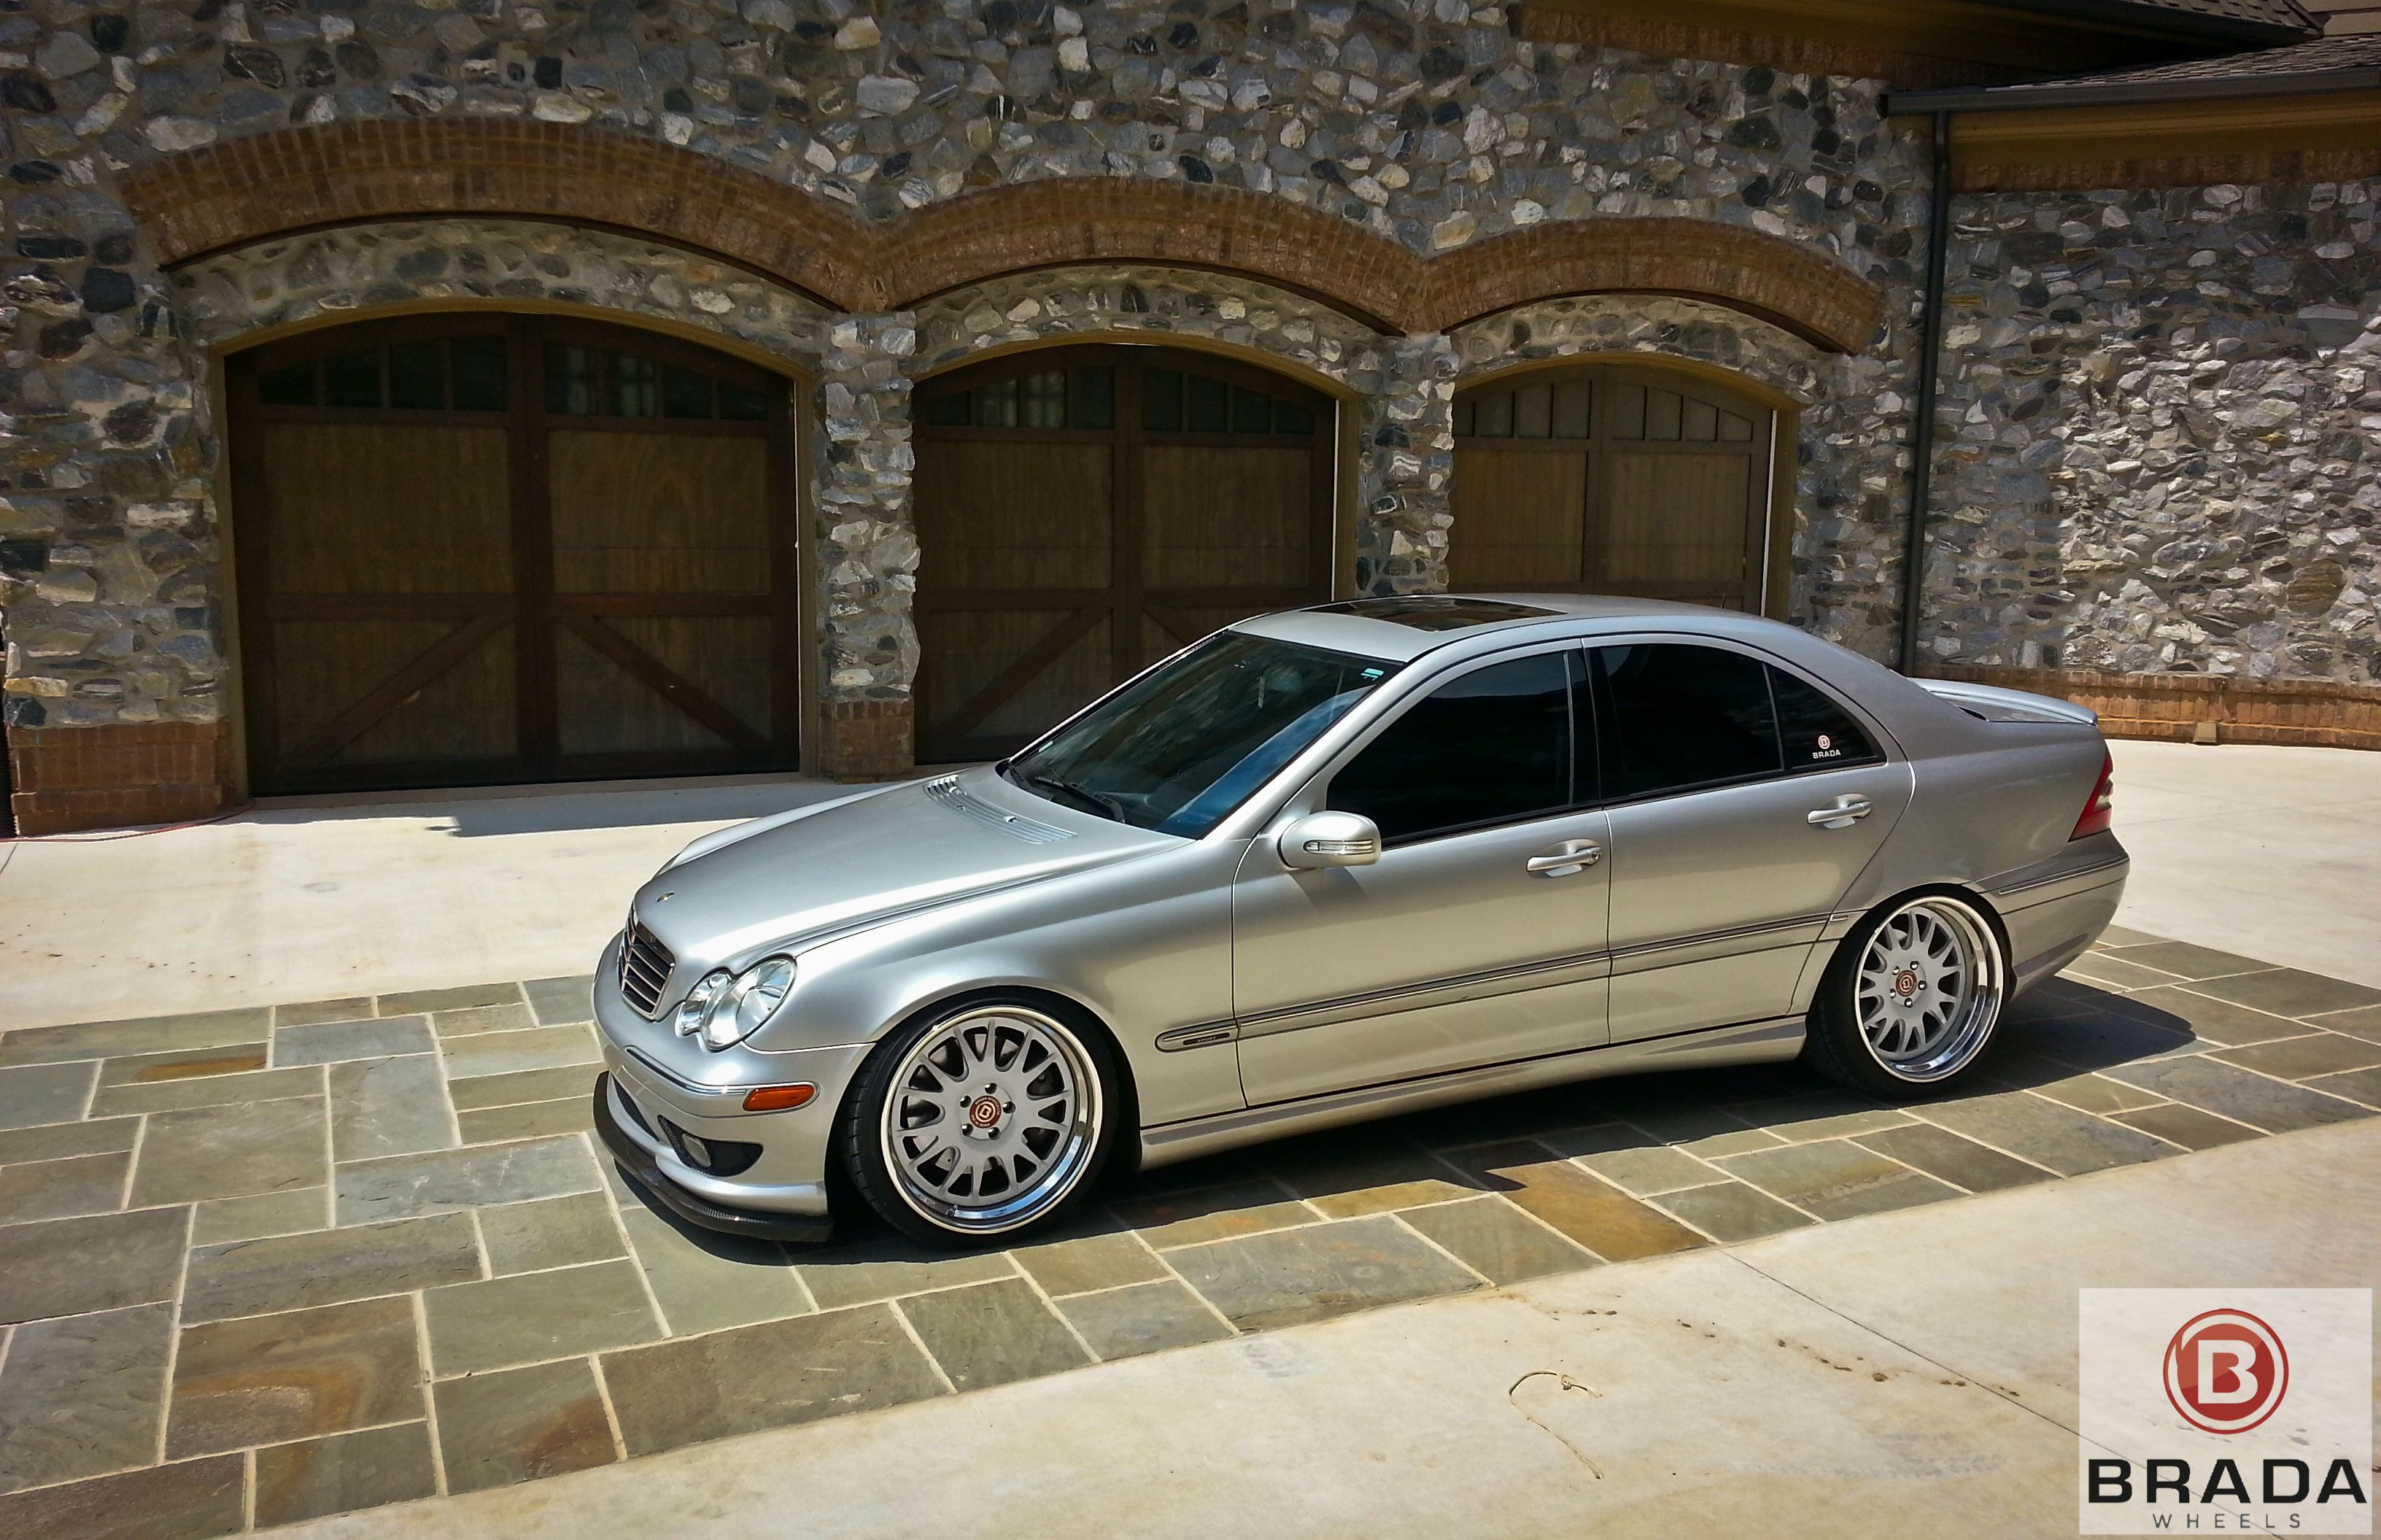 brada wheels br7 mercedes benz c230 supercharged